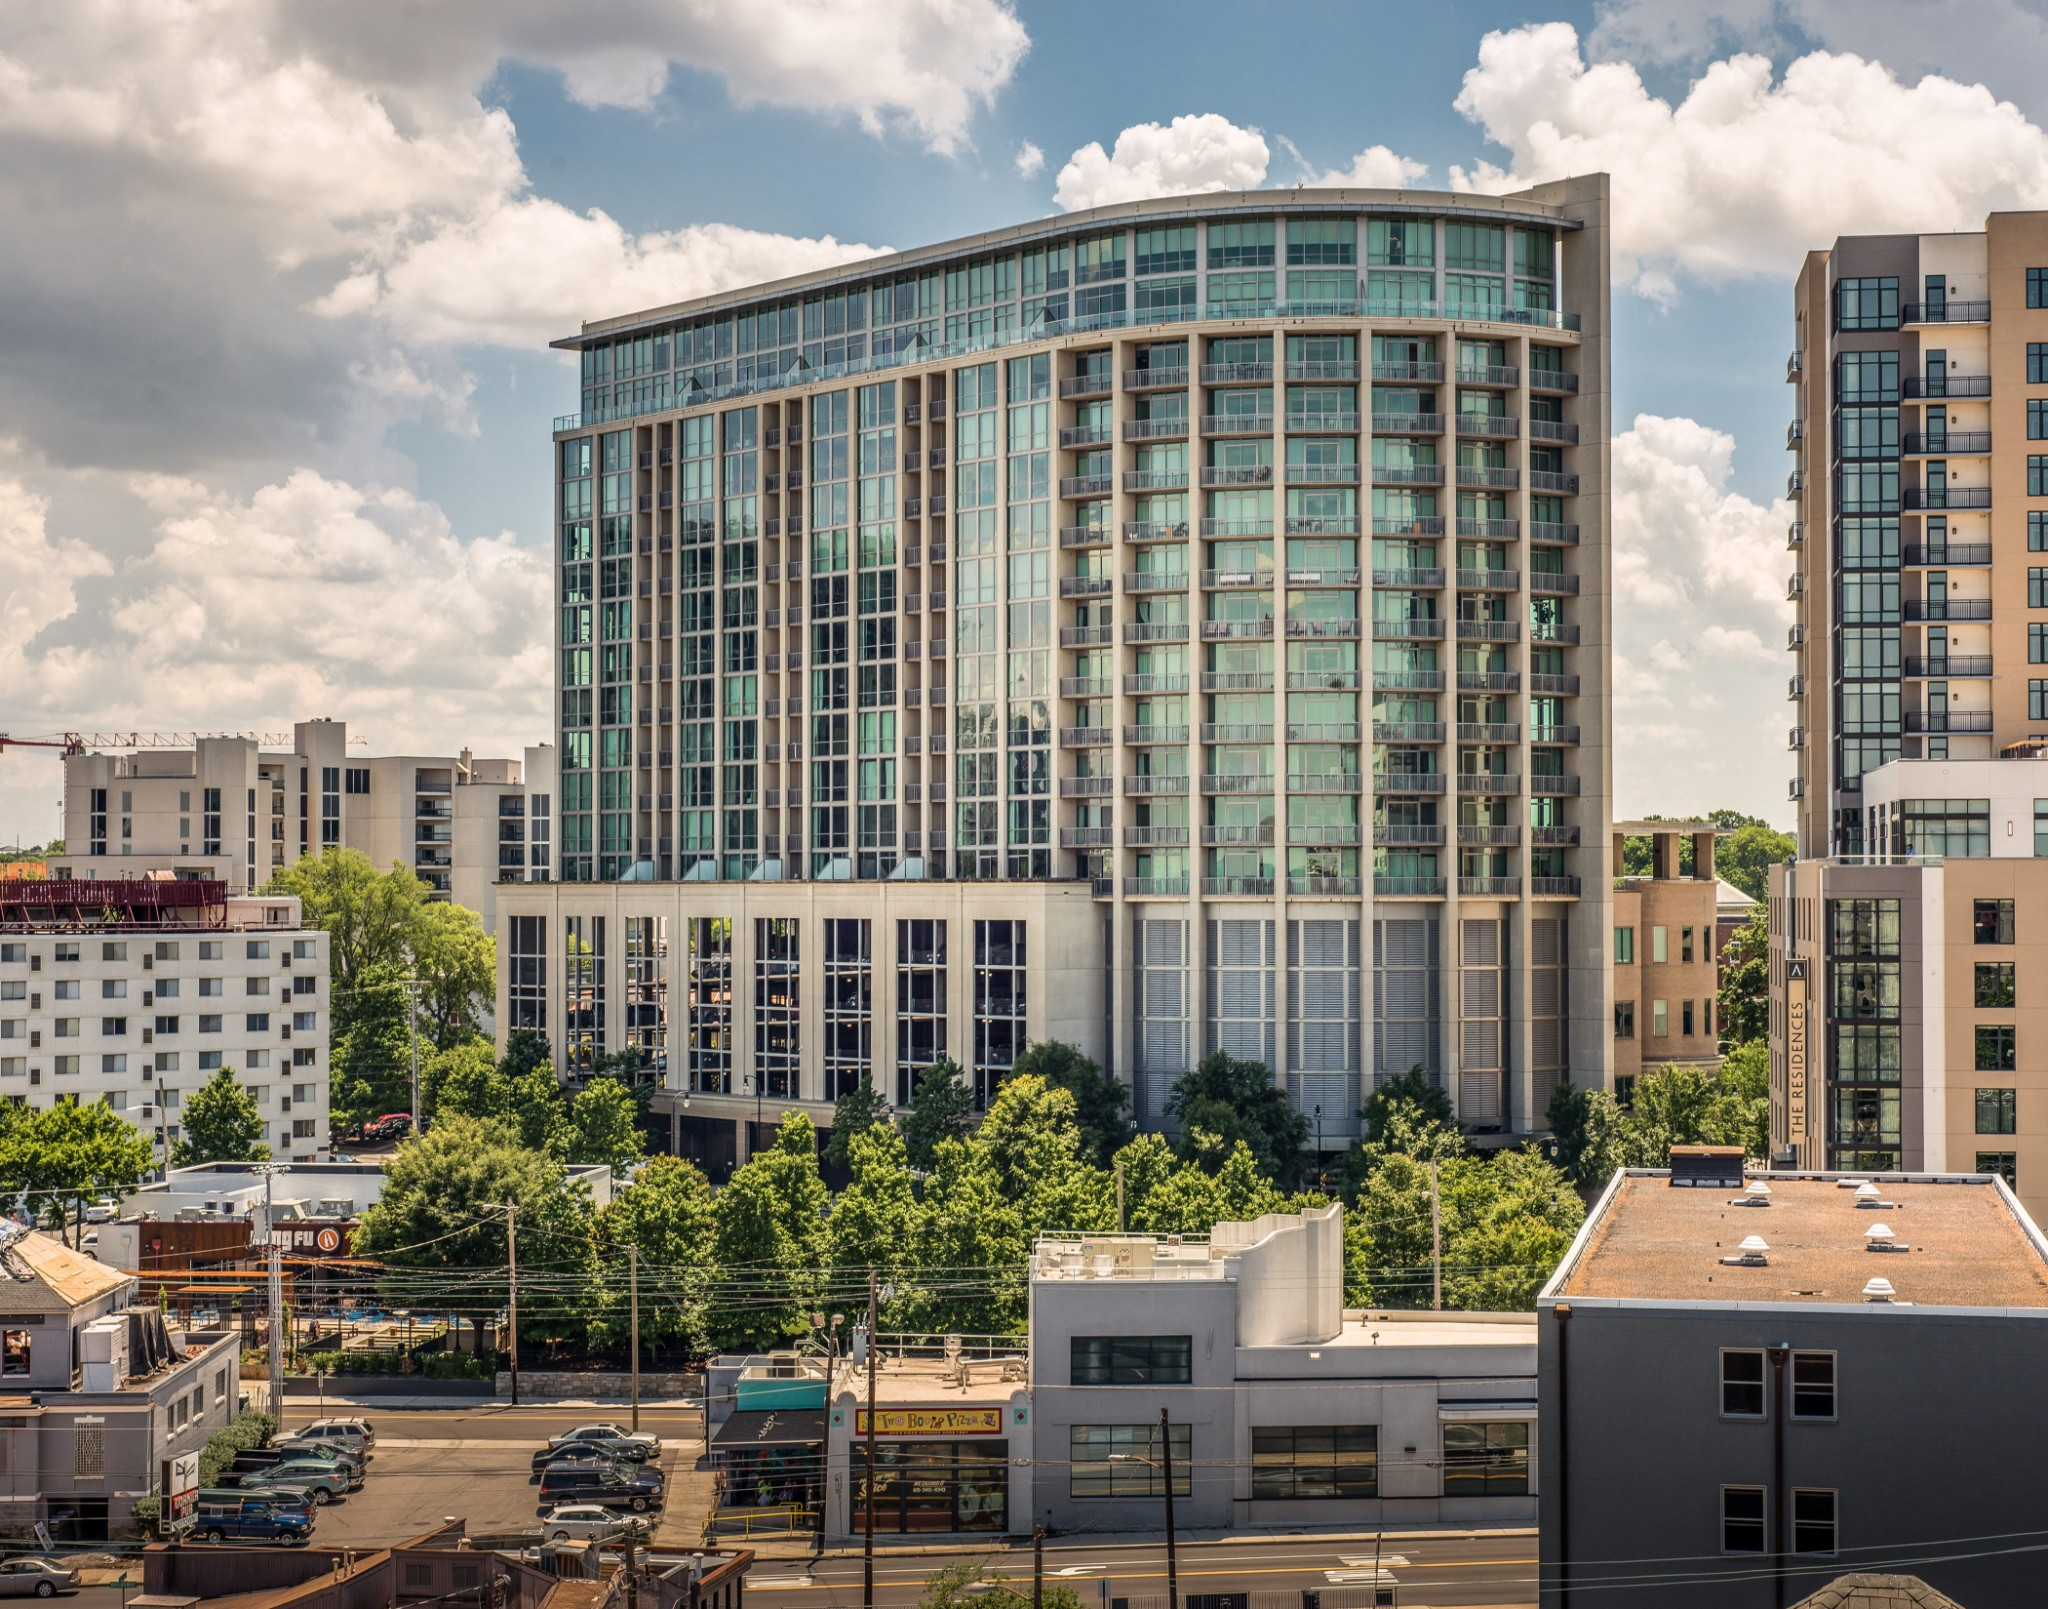 Beautifully renovated condo in one of Nashville's most established high-rise communities. New kitchen, baths, custom details throughout with tasteful and very current finishes. Condo conveys with 2 parking spaces, and overlooks the lush Adelicia private park w/ fantastic views of the city!  Listing agent must be present to show.